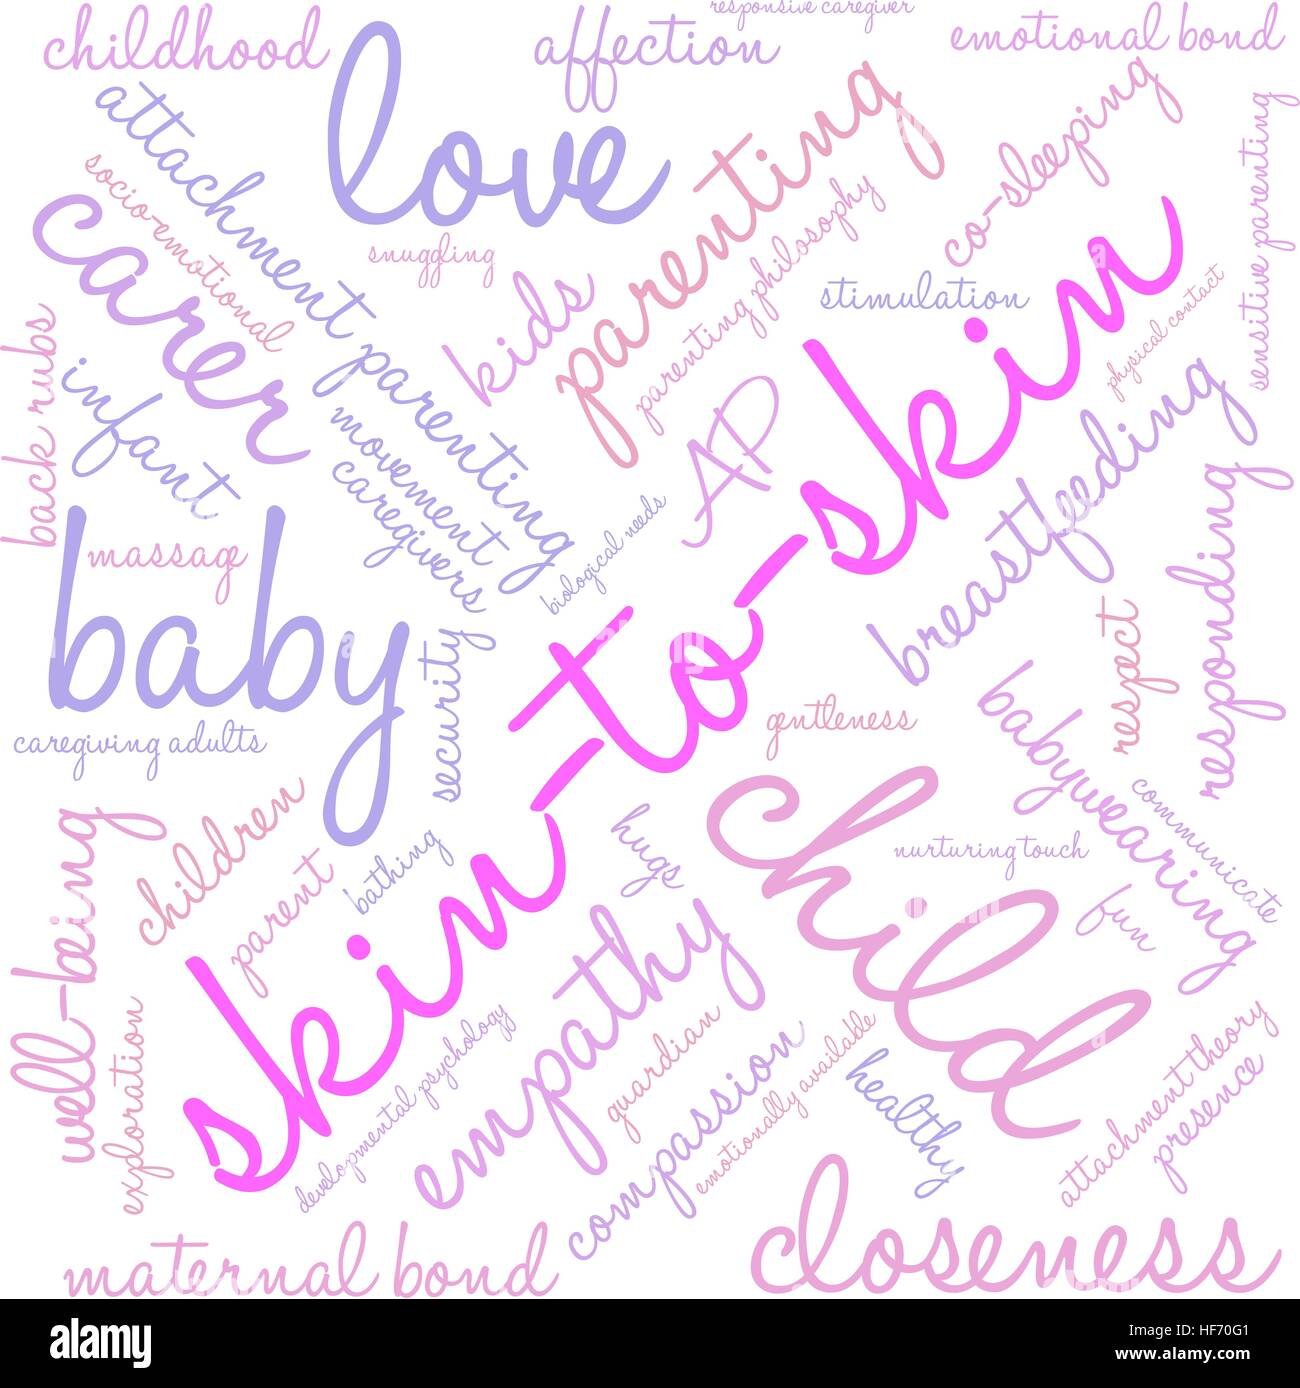 Skin-To-Skin word cloud on a white background. - Stock Image